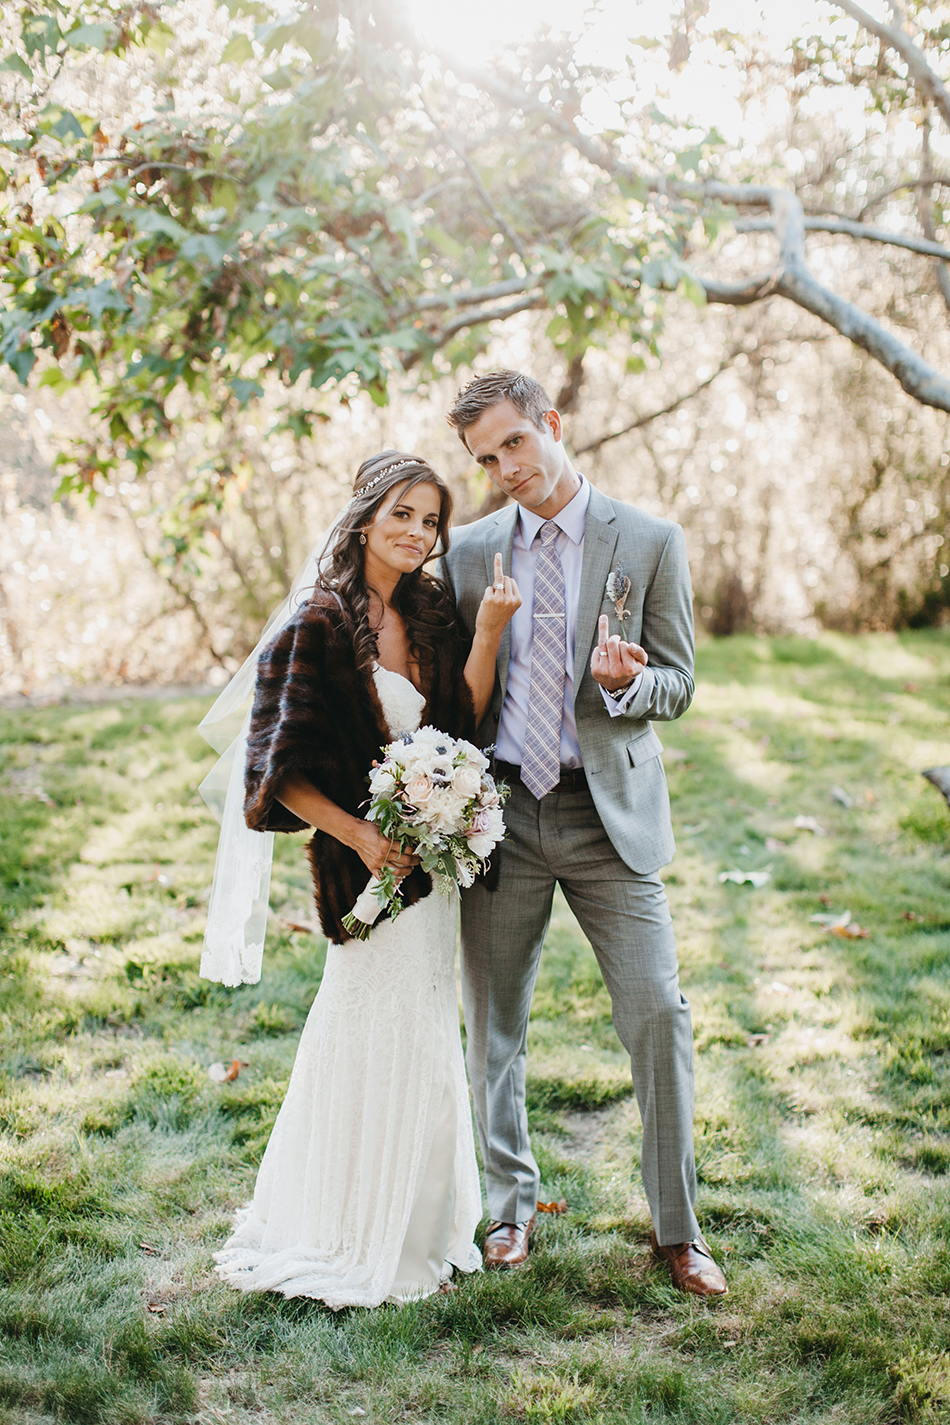 elizabethdye_california_realwedding_02.jpg